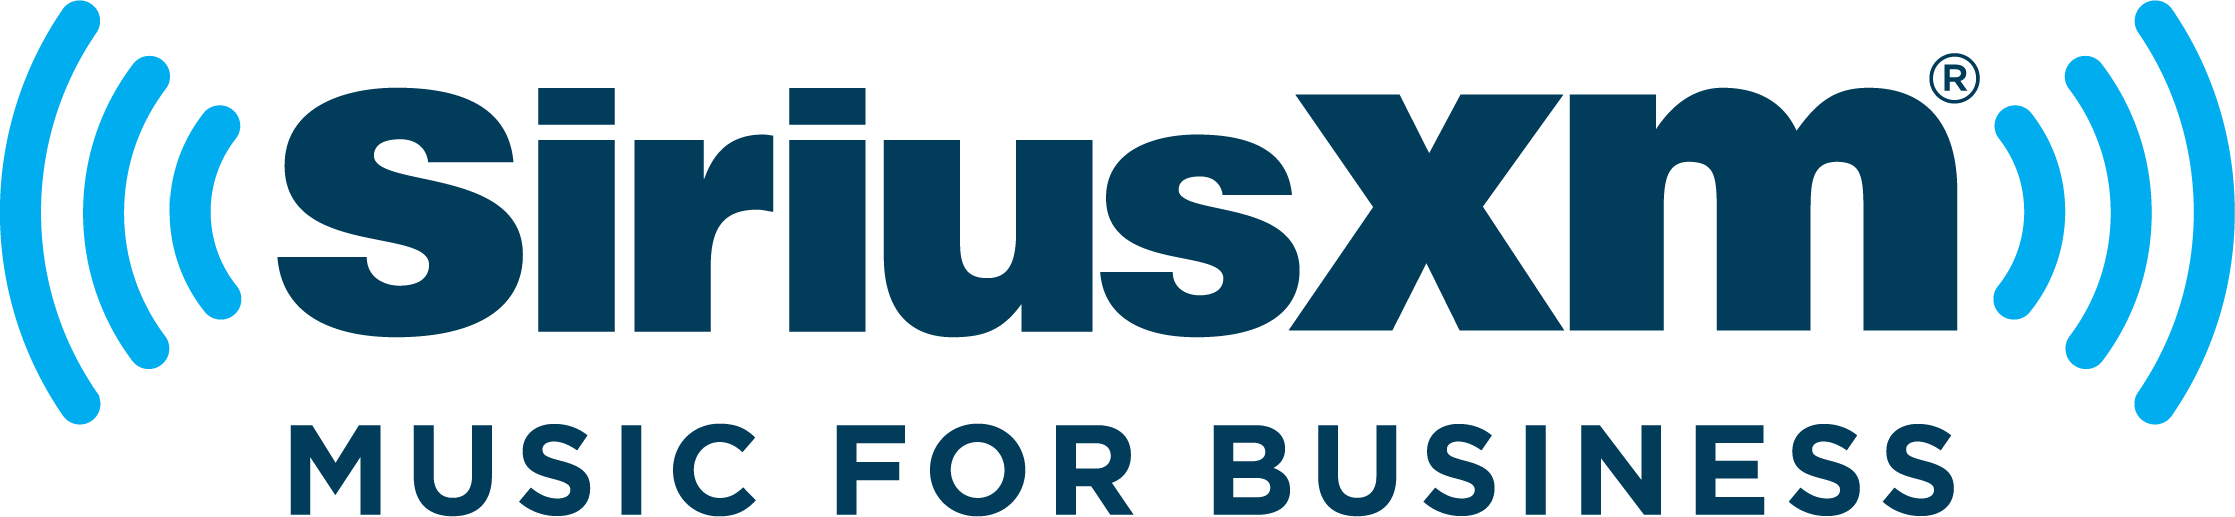 sirius xm broadcast online business plan